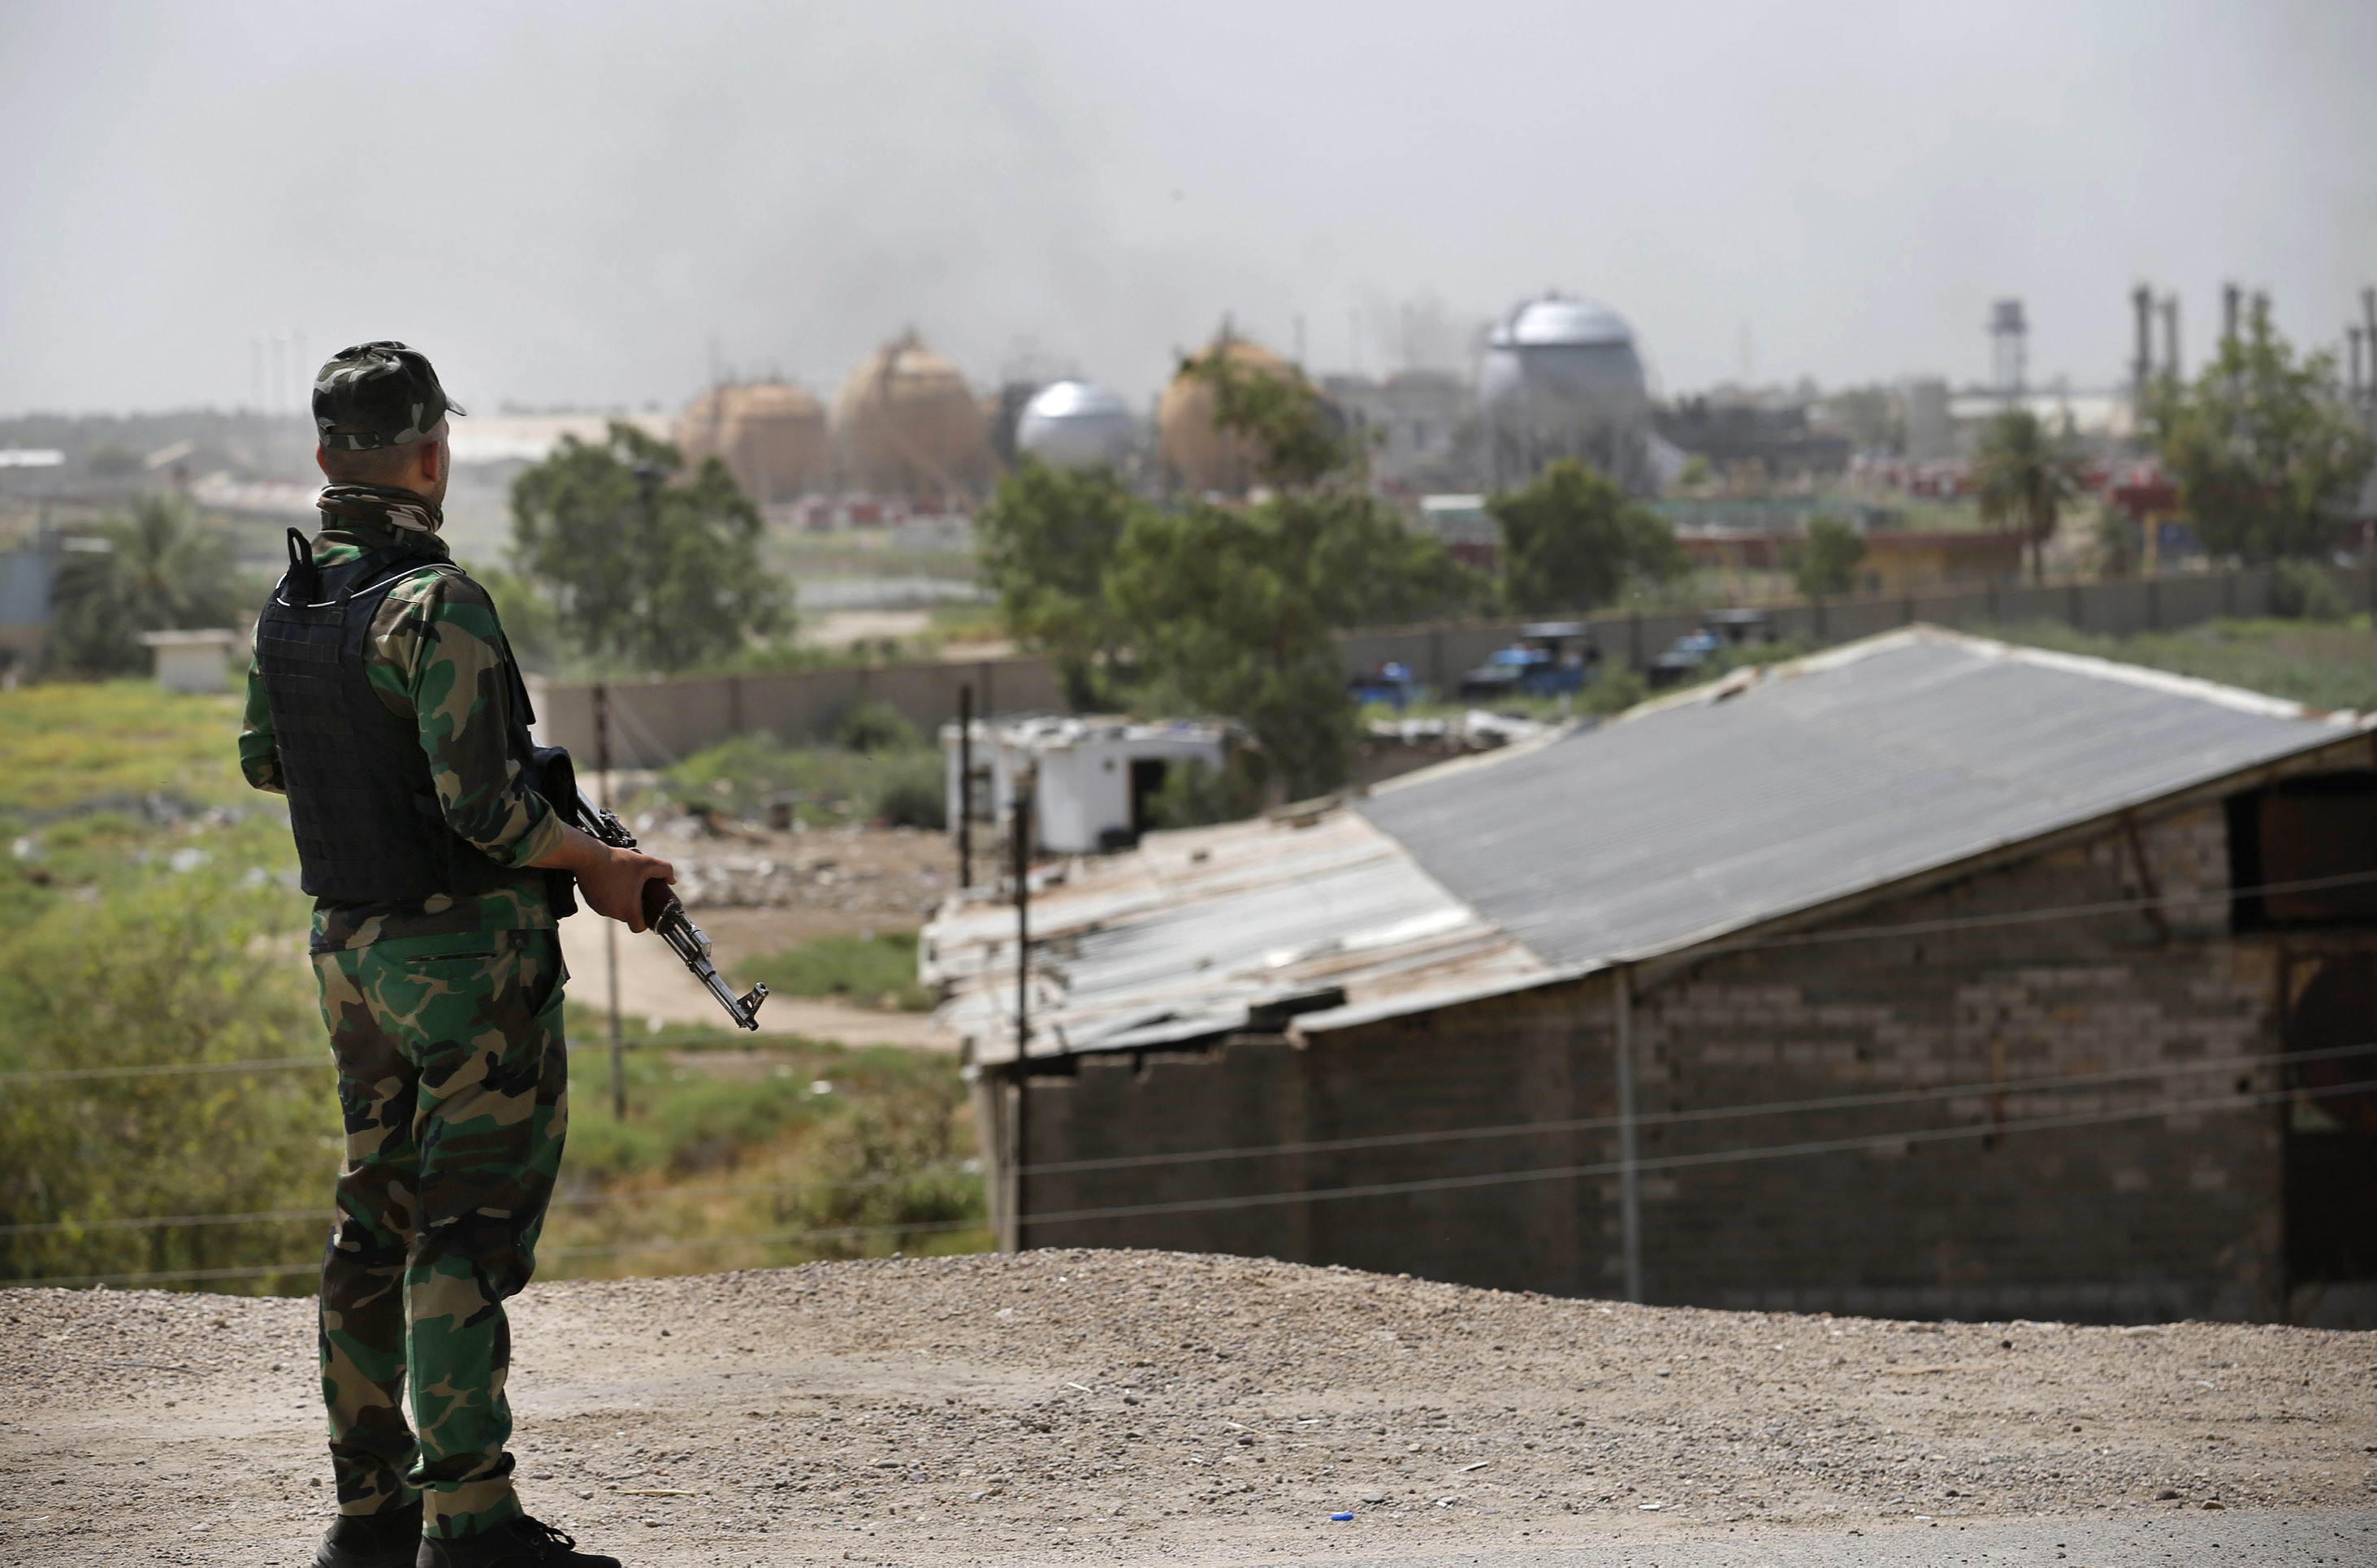 An Iraqi federal police officer stands guard outside the natural gas plant in Taji, 20 kilometers north of Baghdad, Iraq, May 15, 2016. The plant was targeted by an apparant Islamic State attack.